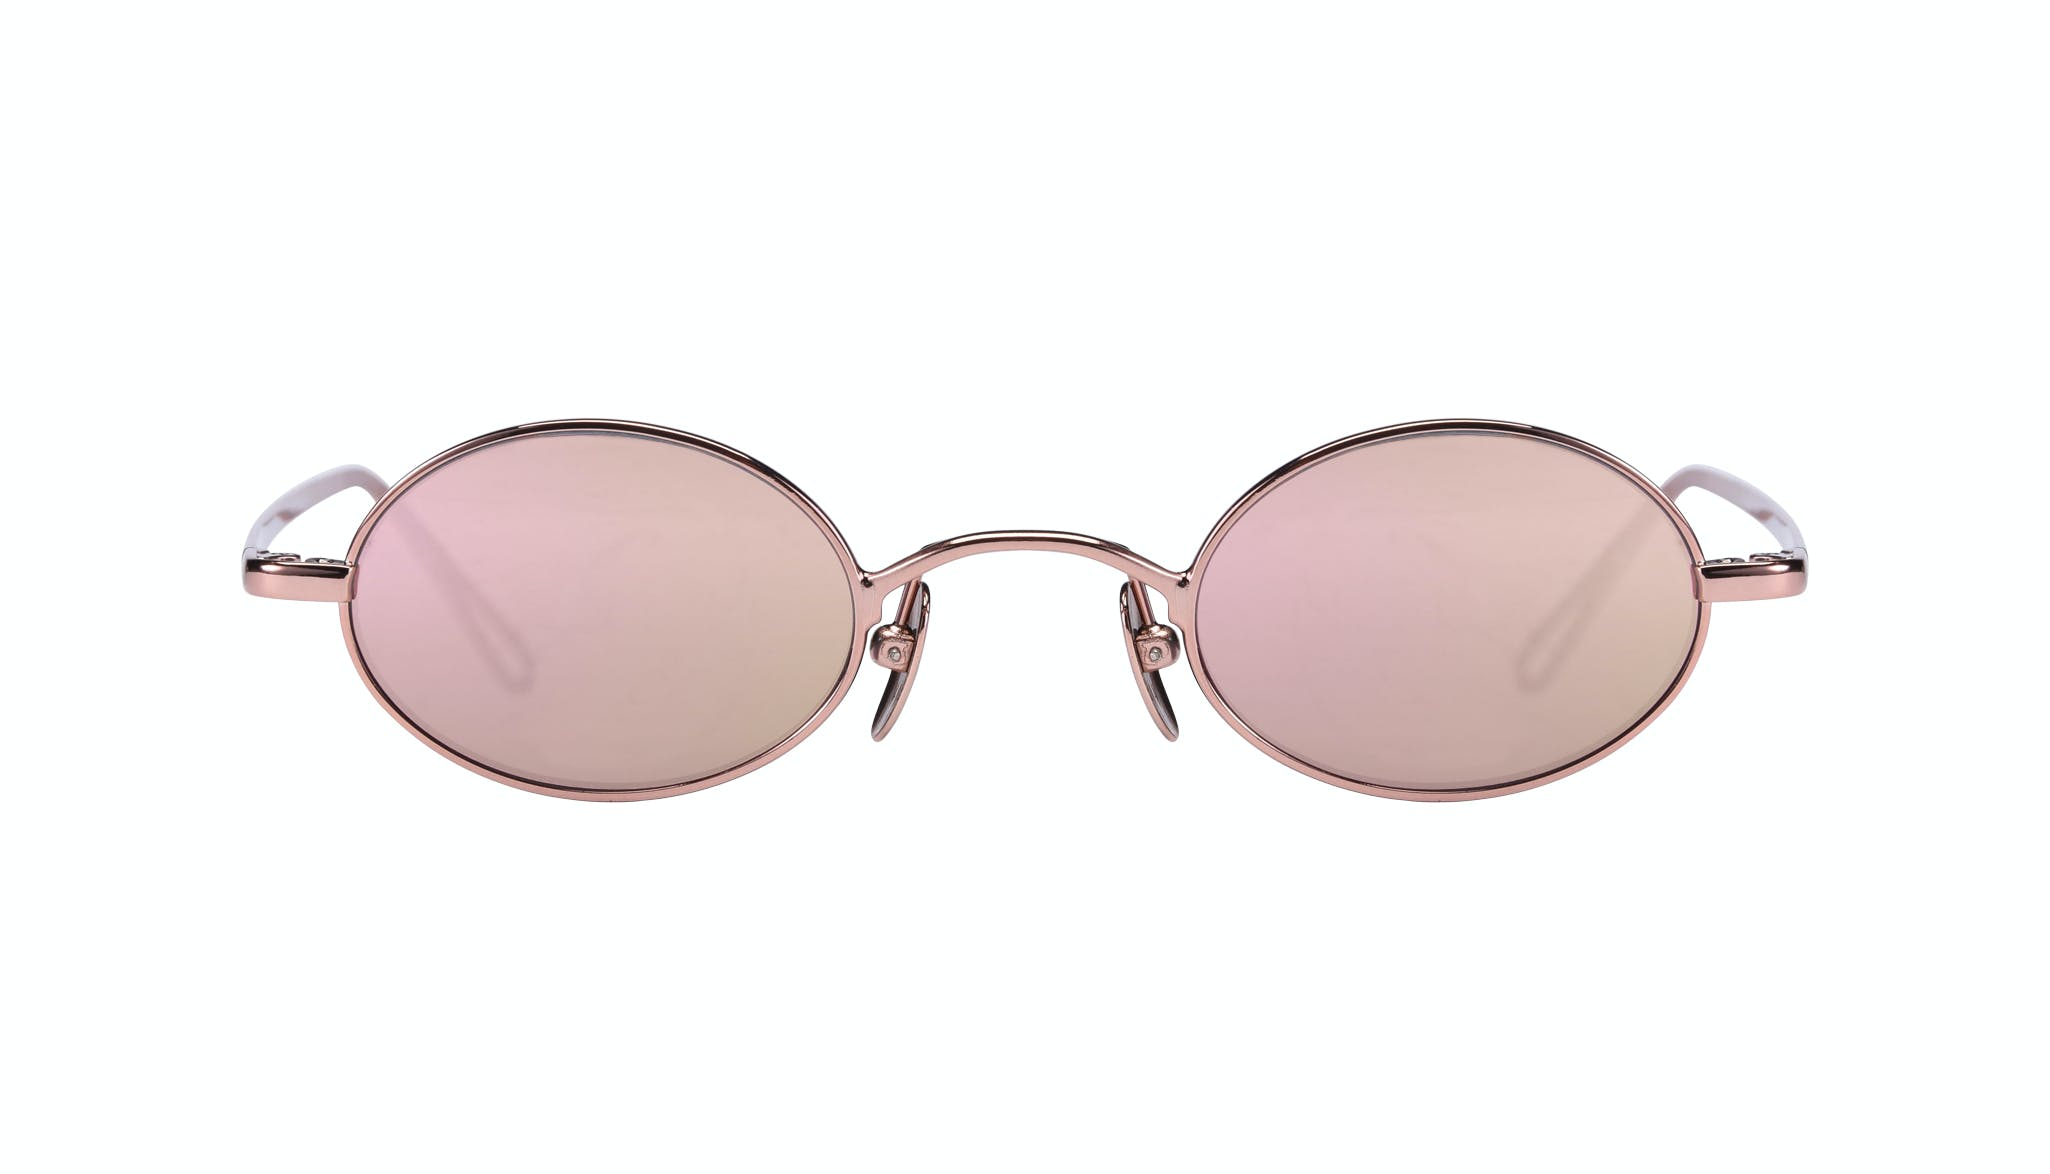 Affordable Fashion Glasses Round Sunglasses Women Stellar Rose Gold